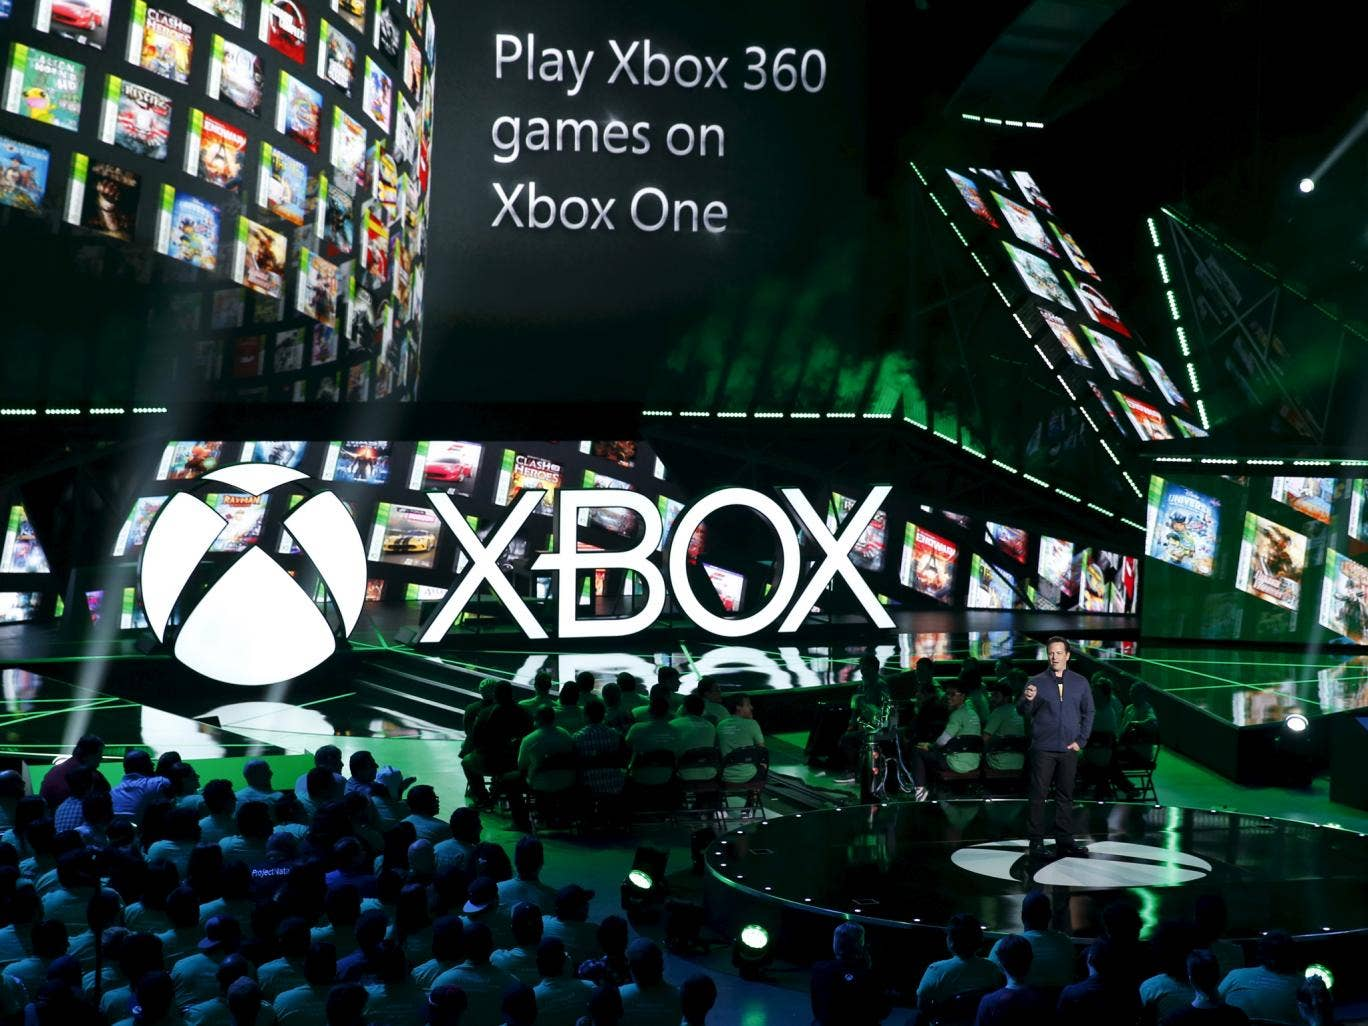 New Xbox One Indie Games : New xbox one experience microsoft launches dashboard